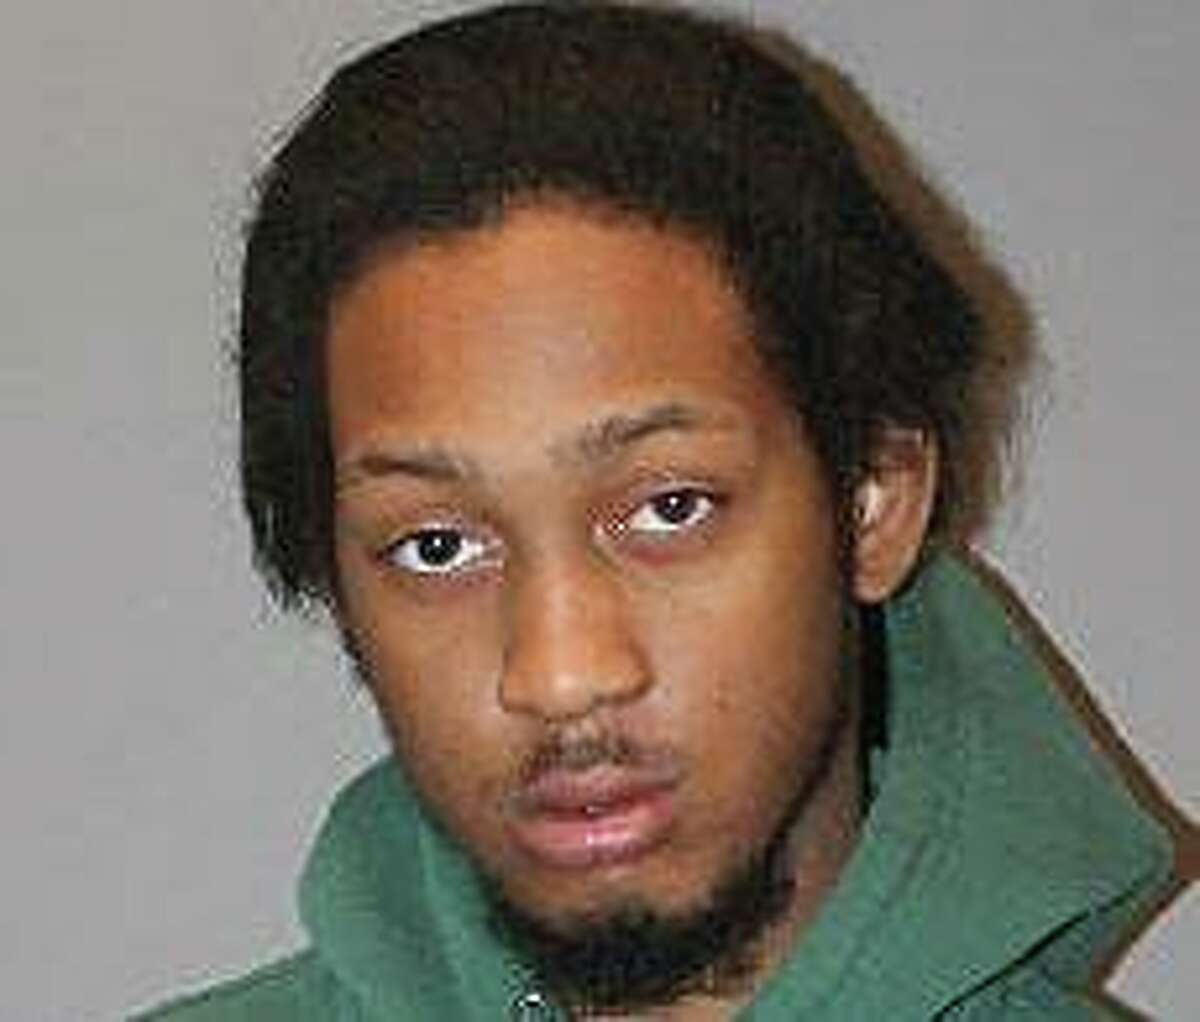 Aaron Brown, 19, of Brooklyn, N.Y., was charged with third-degree burglary and first-degree larceny.